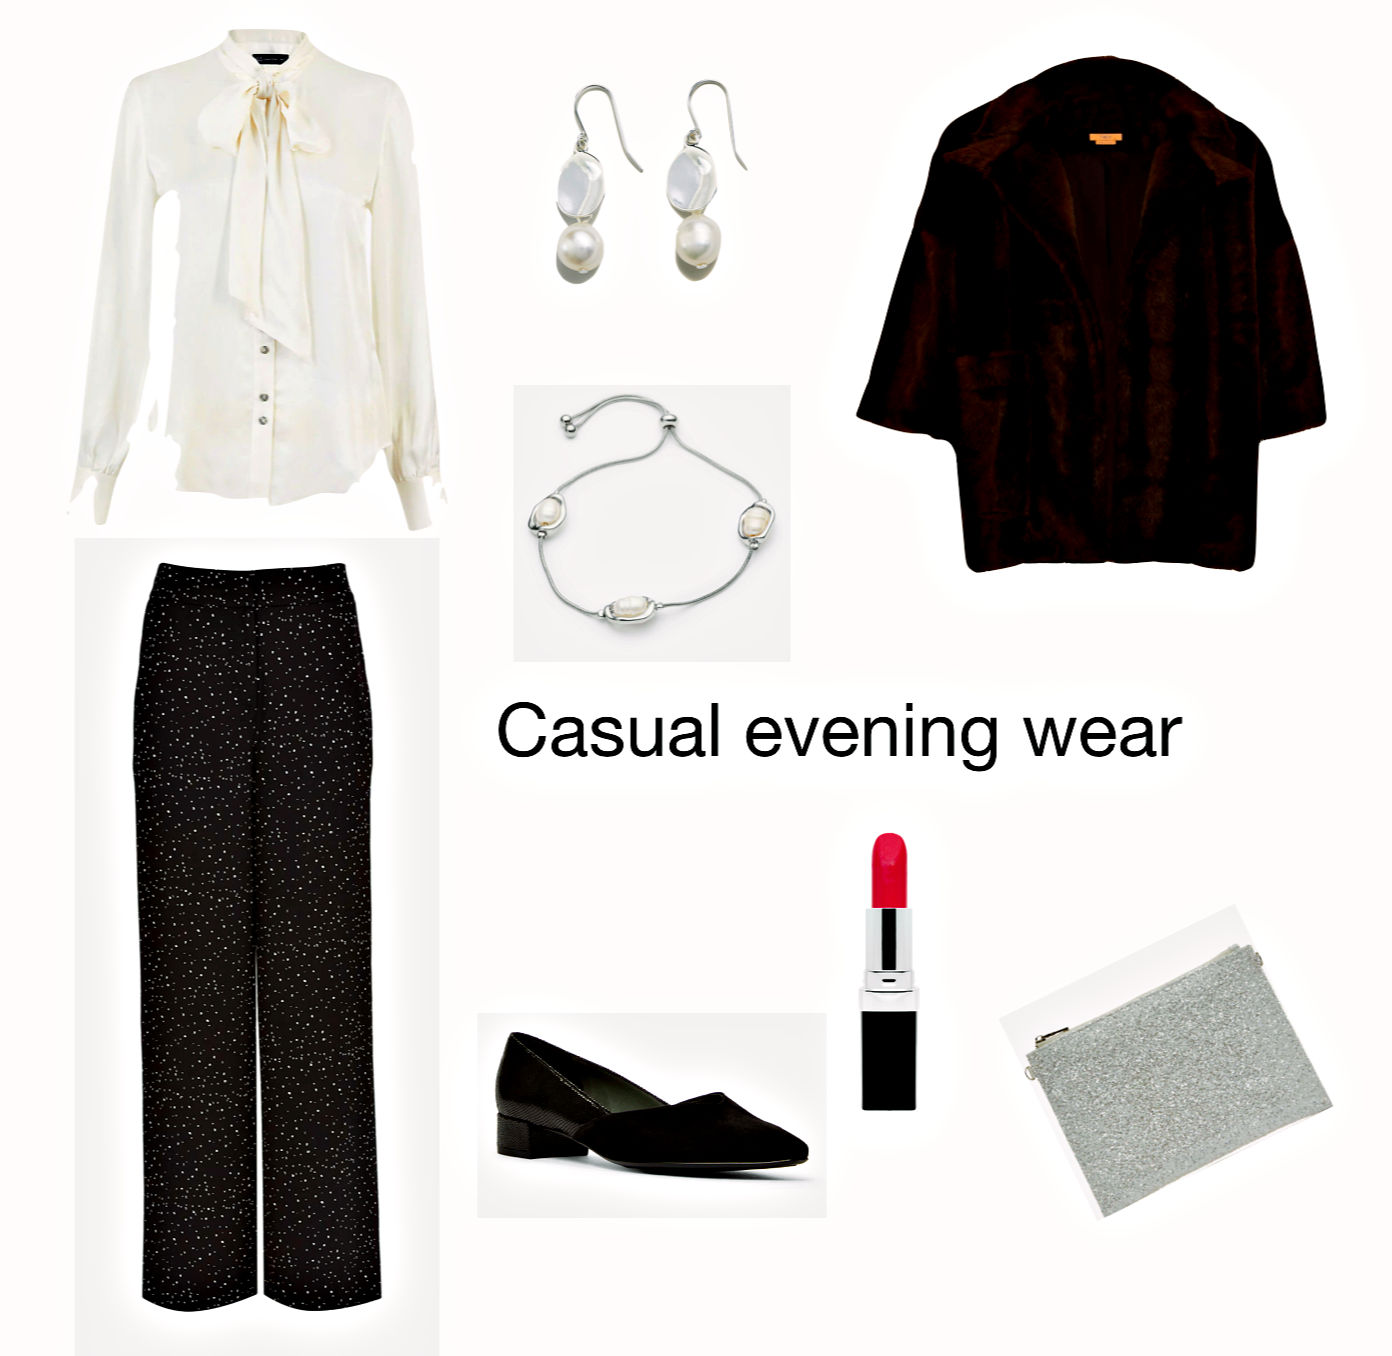 Casual evening wear with trousers